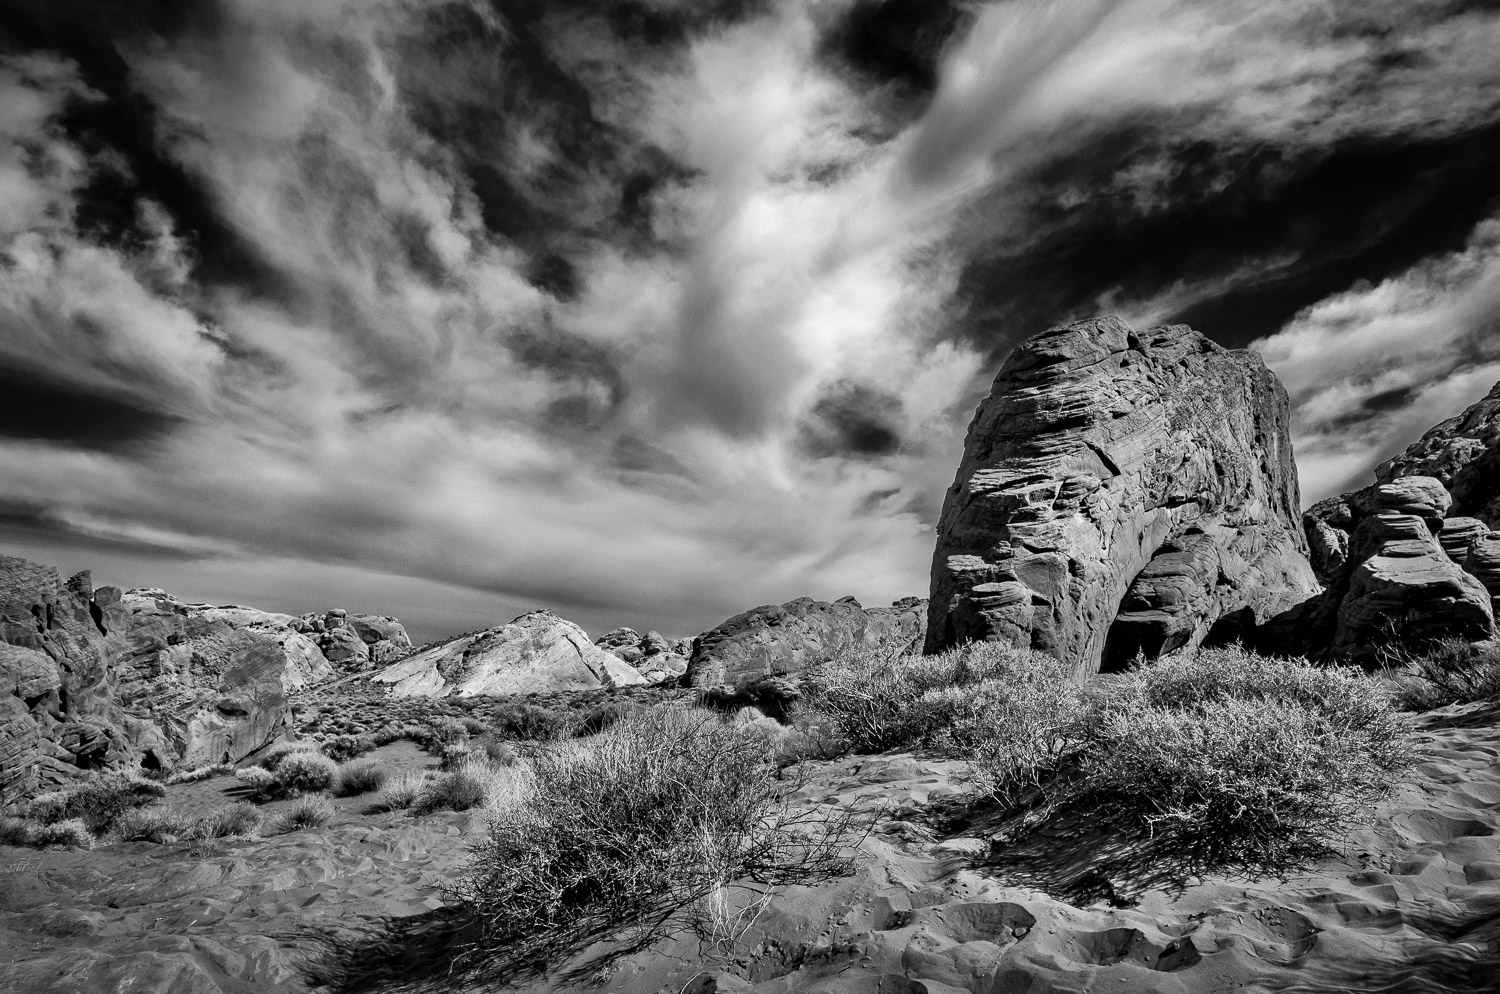 Valley of Fire, Nevada 2014